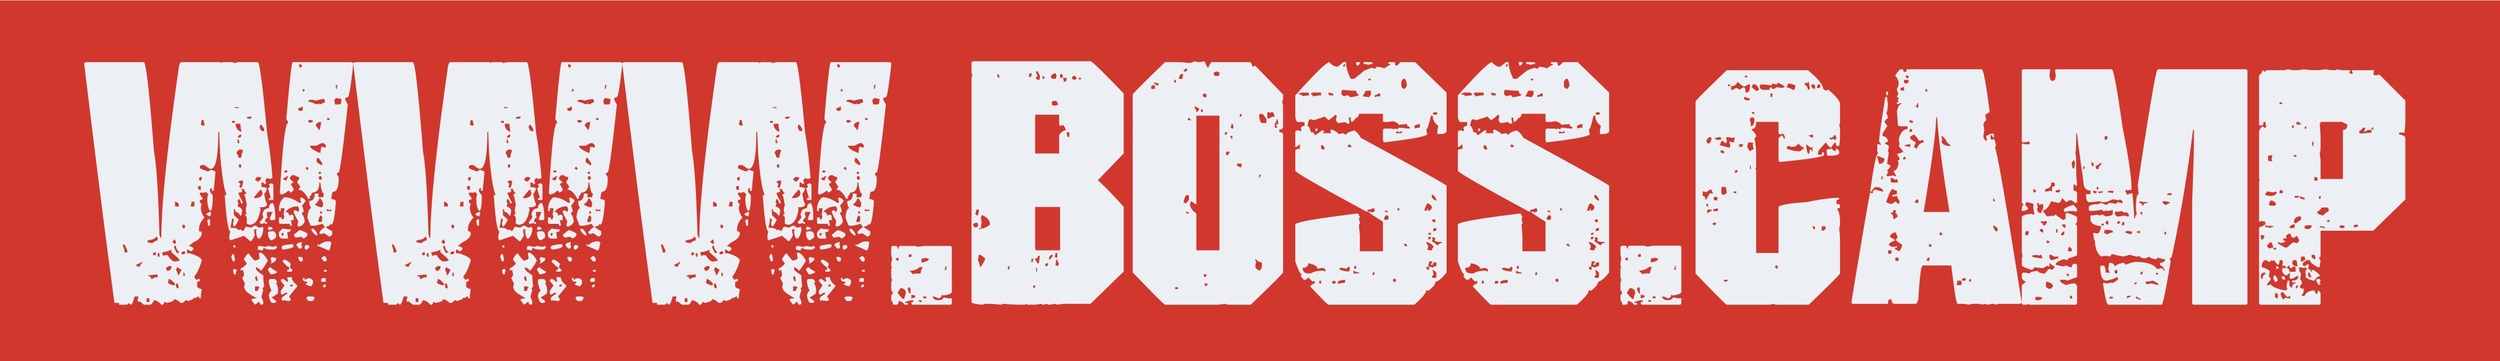 Be a better boss with www.boss.camp Jpeg